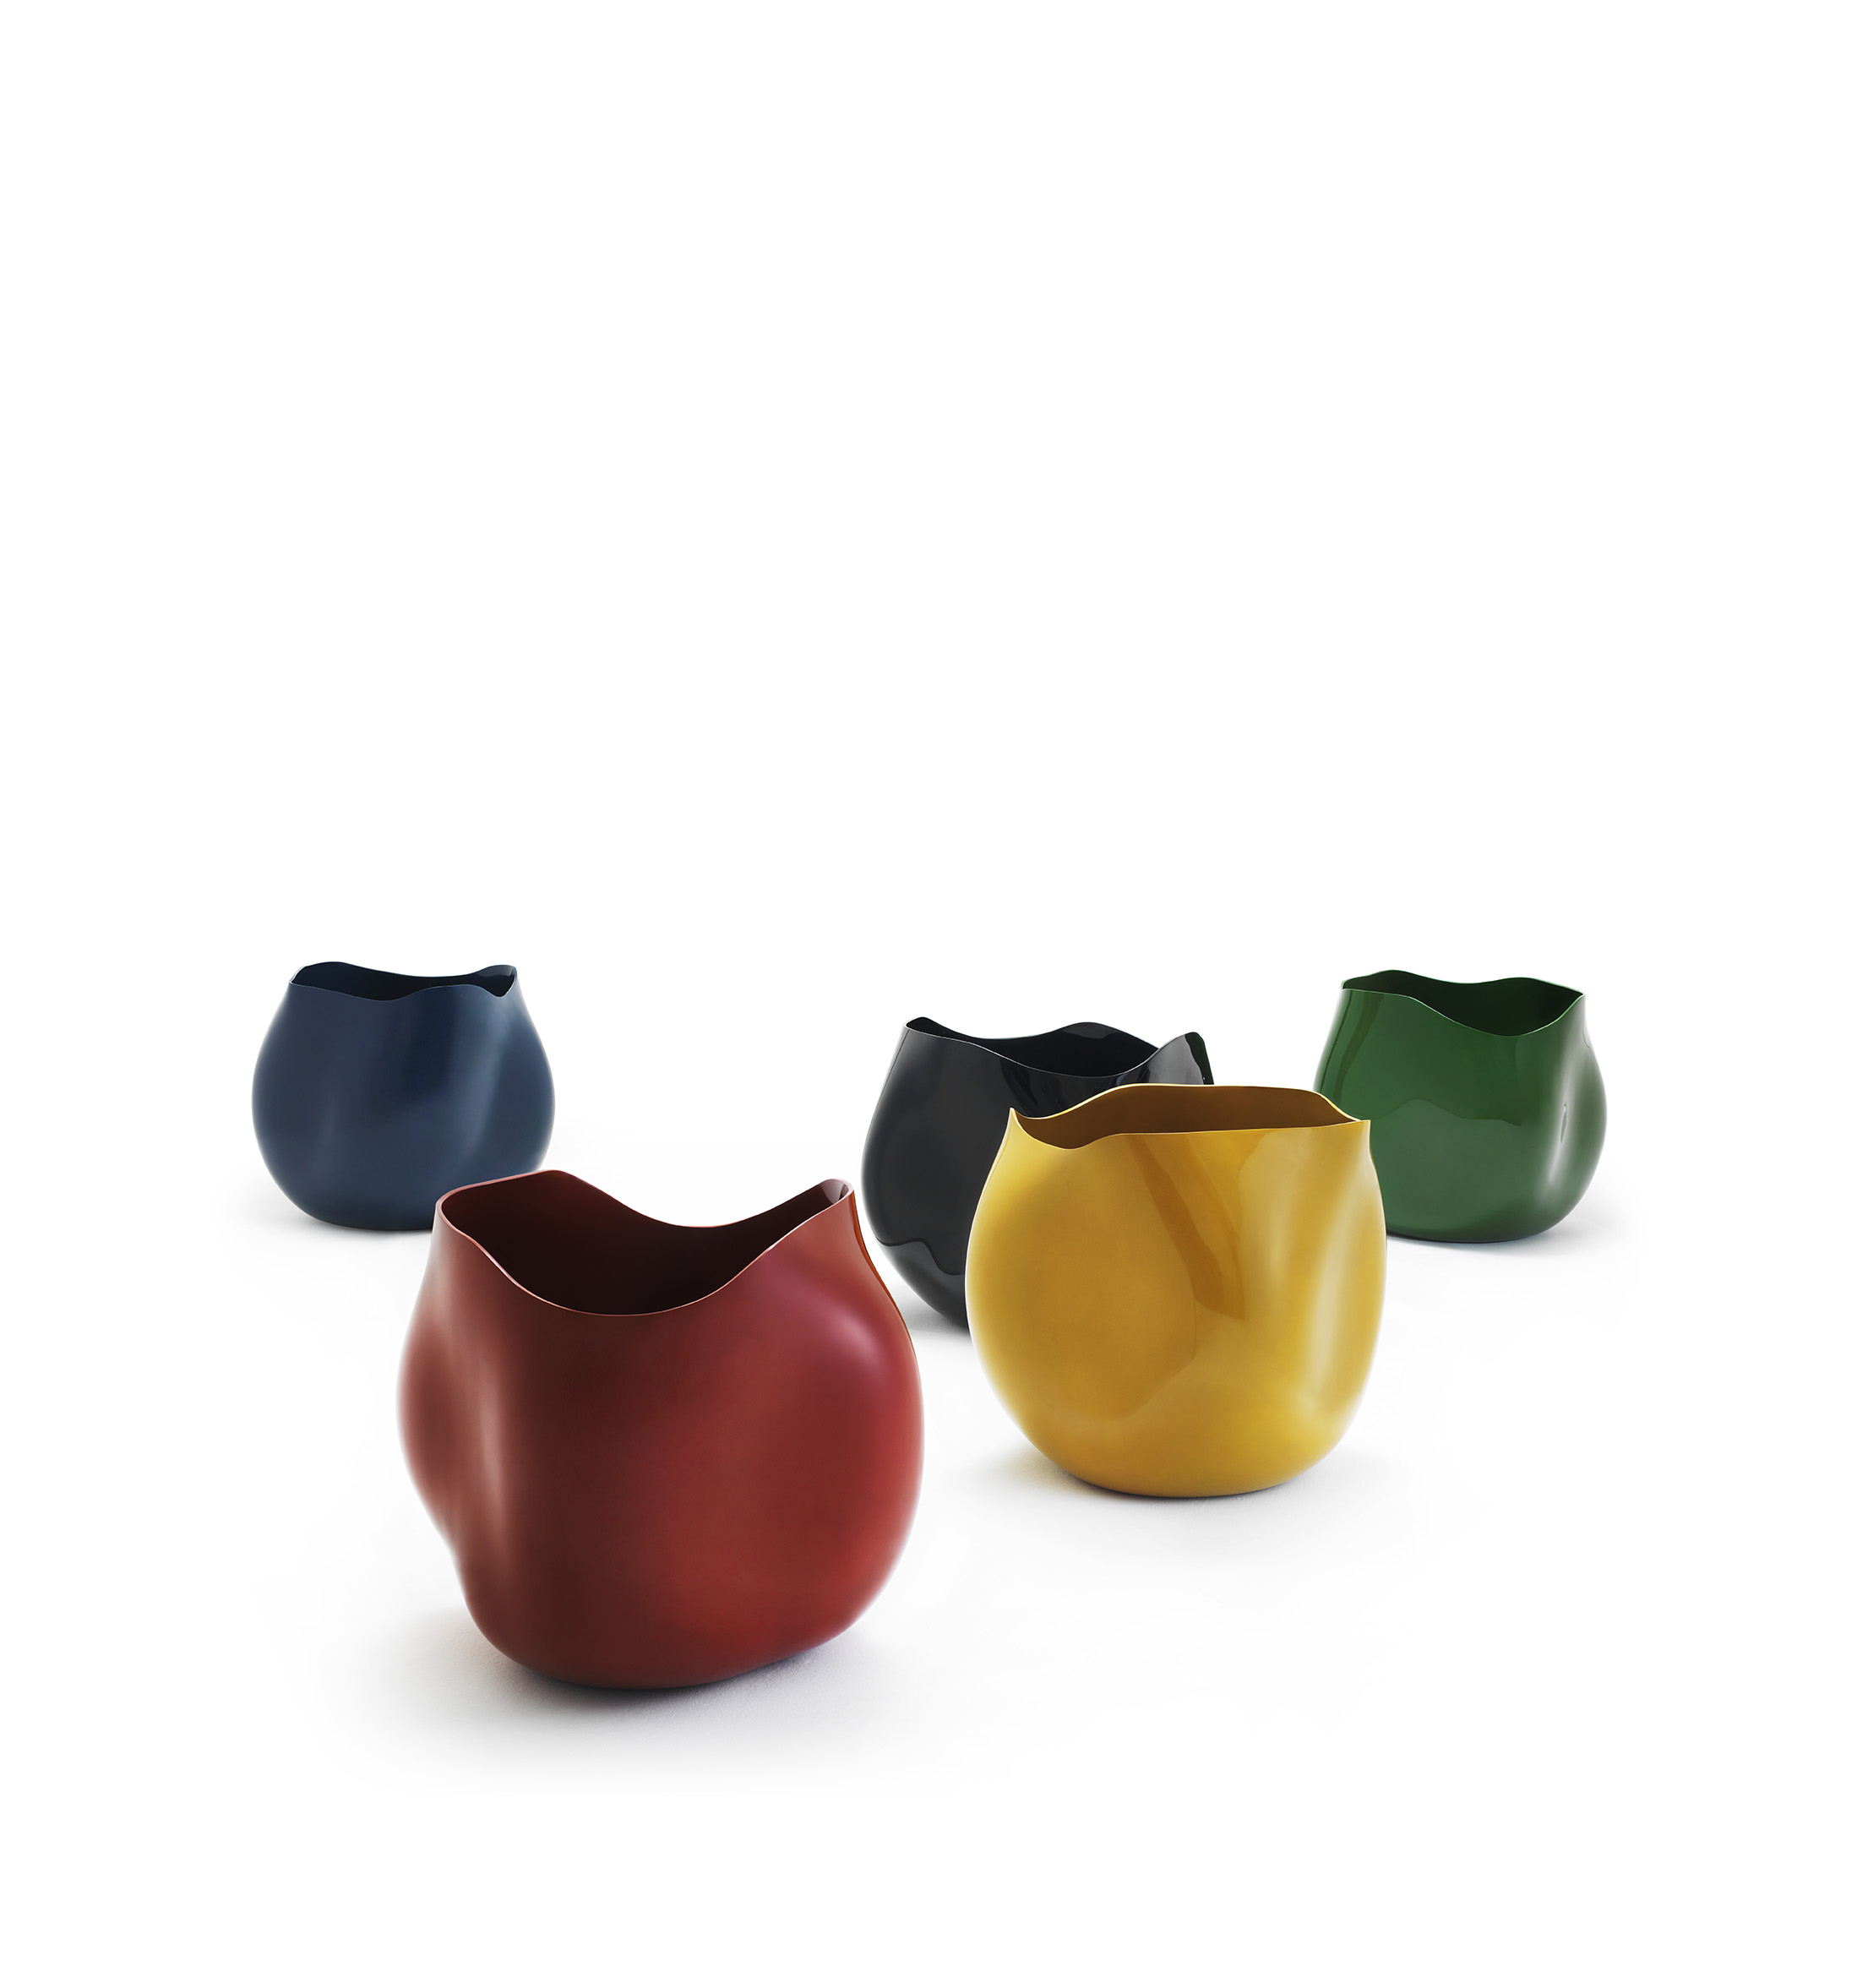 """Hae Cho Chung, Republic of Korea """"Five color vessels 0831"""", ottchil on hemp fabric and polished with deer's antler, 120 x 120 x 120 mm (2013)"""